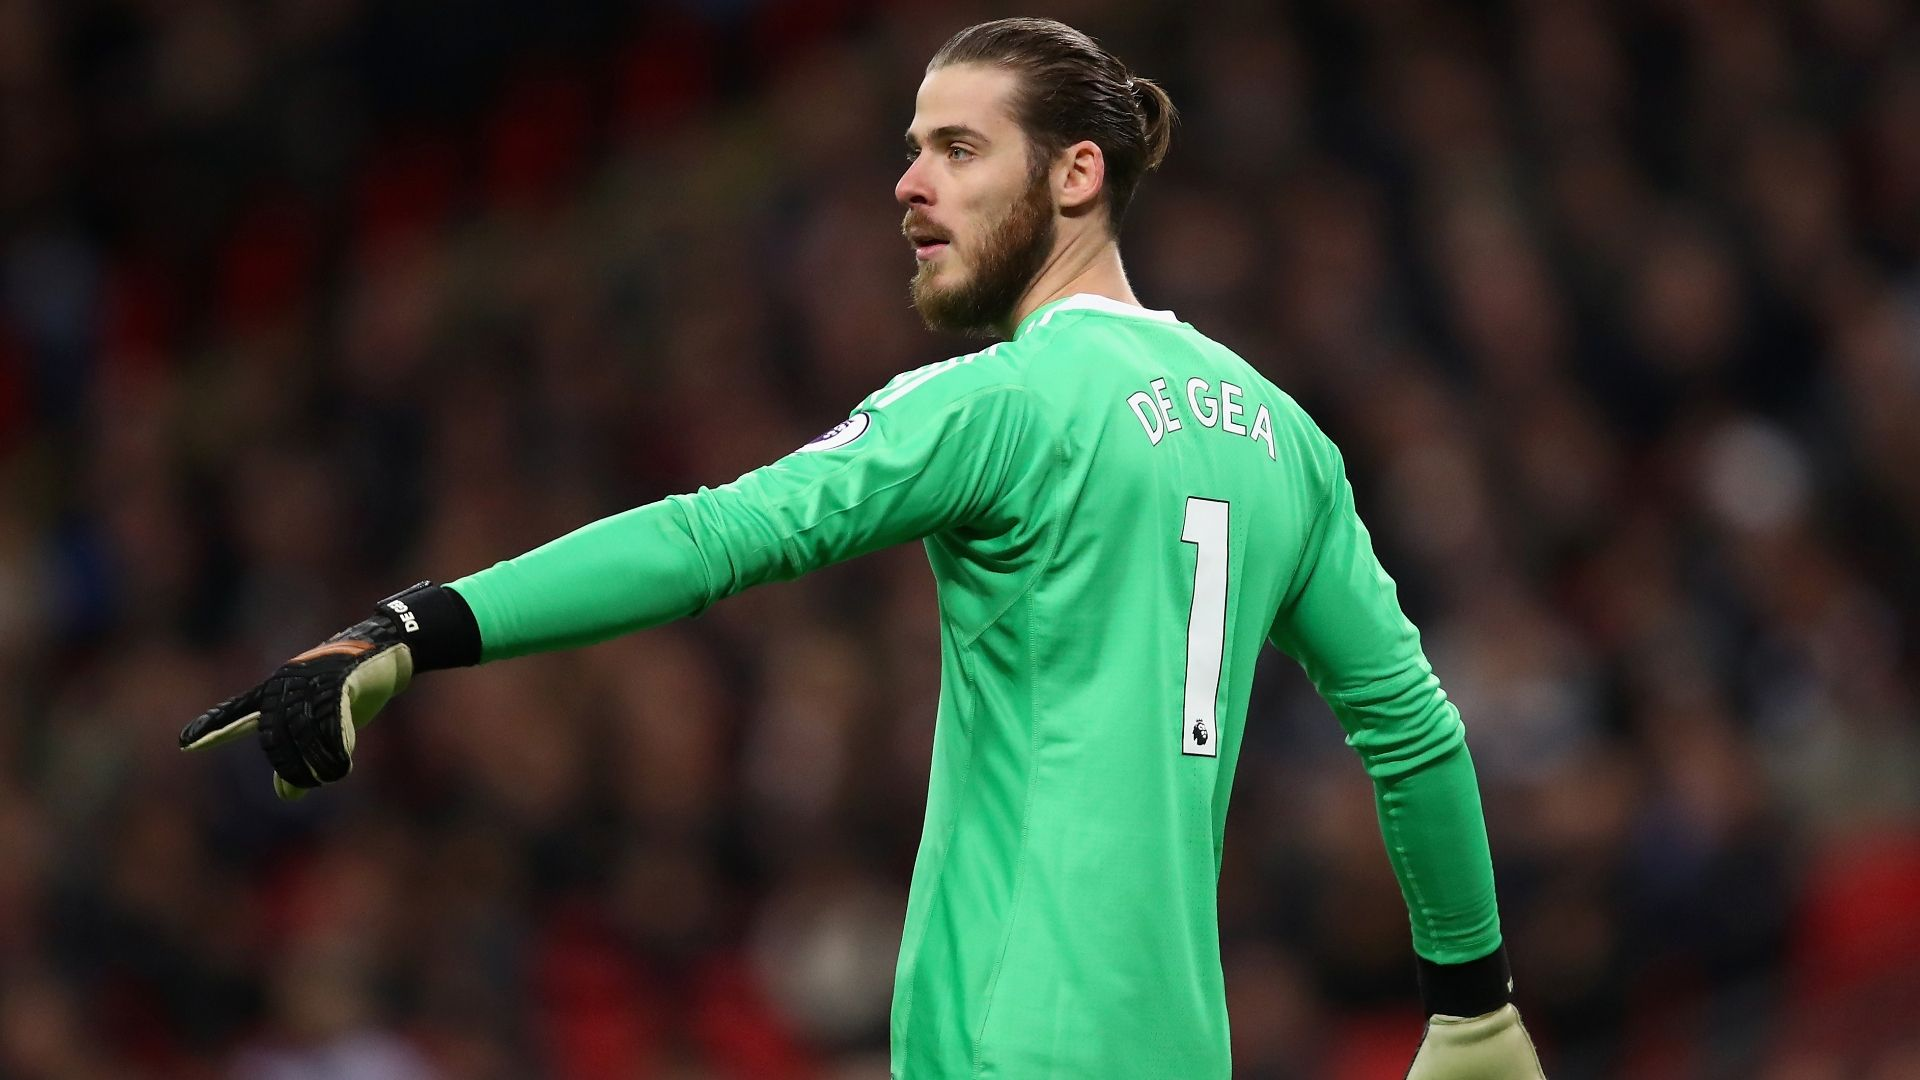 Transfer Talk: De Gea demands world-record wage